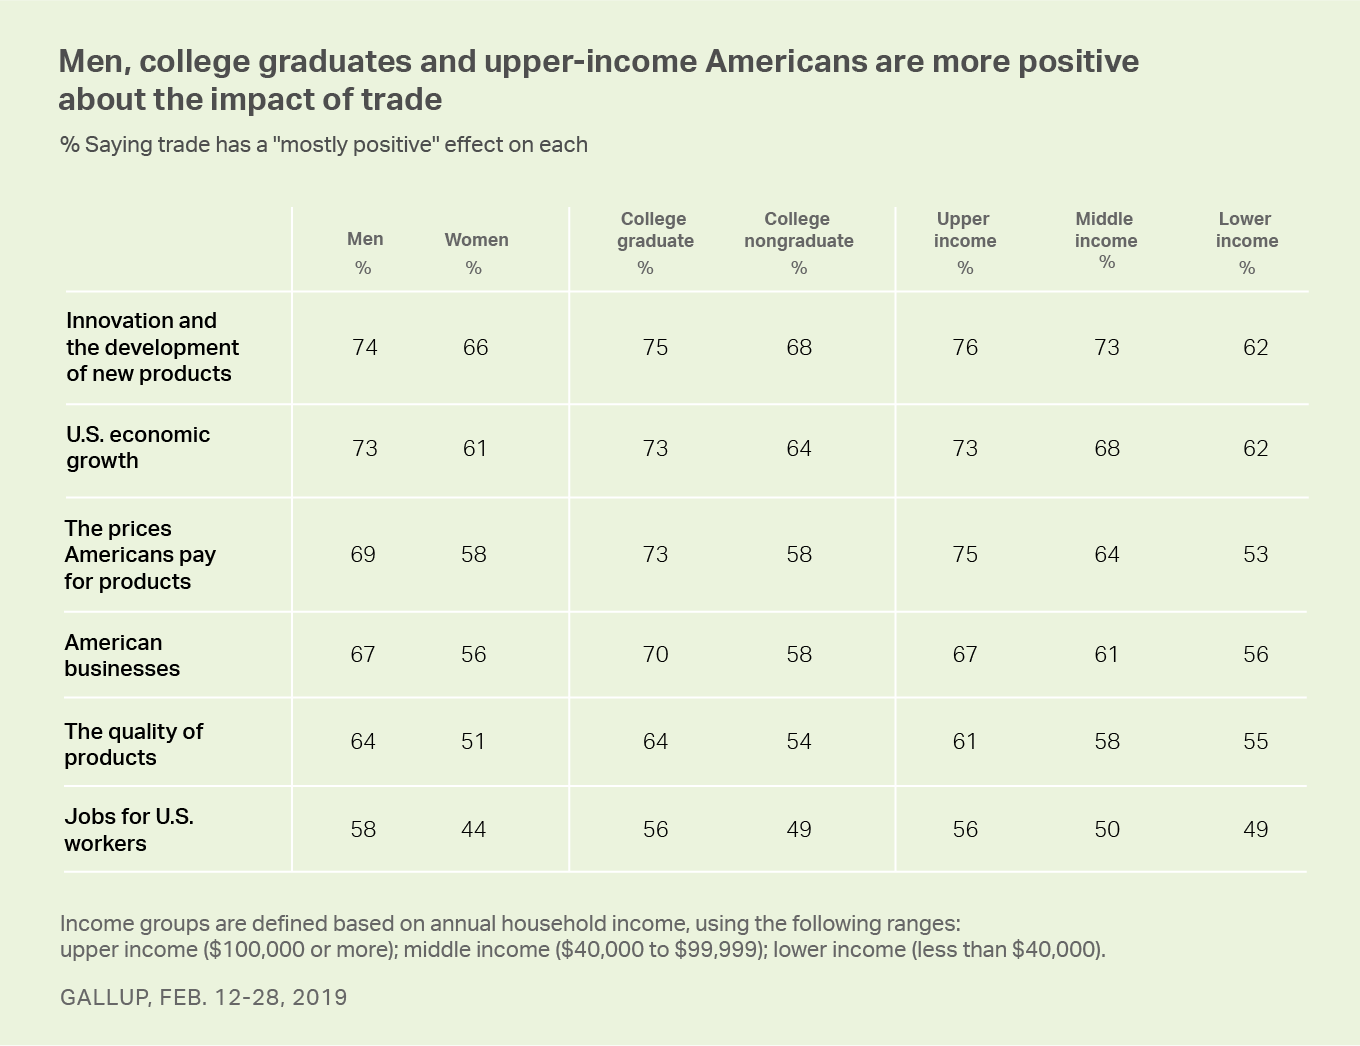 Table. Men, college graduates and upper-income adults are especially positive about the effects of trade.